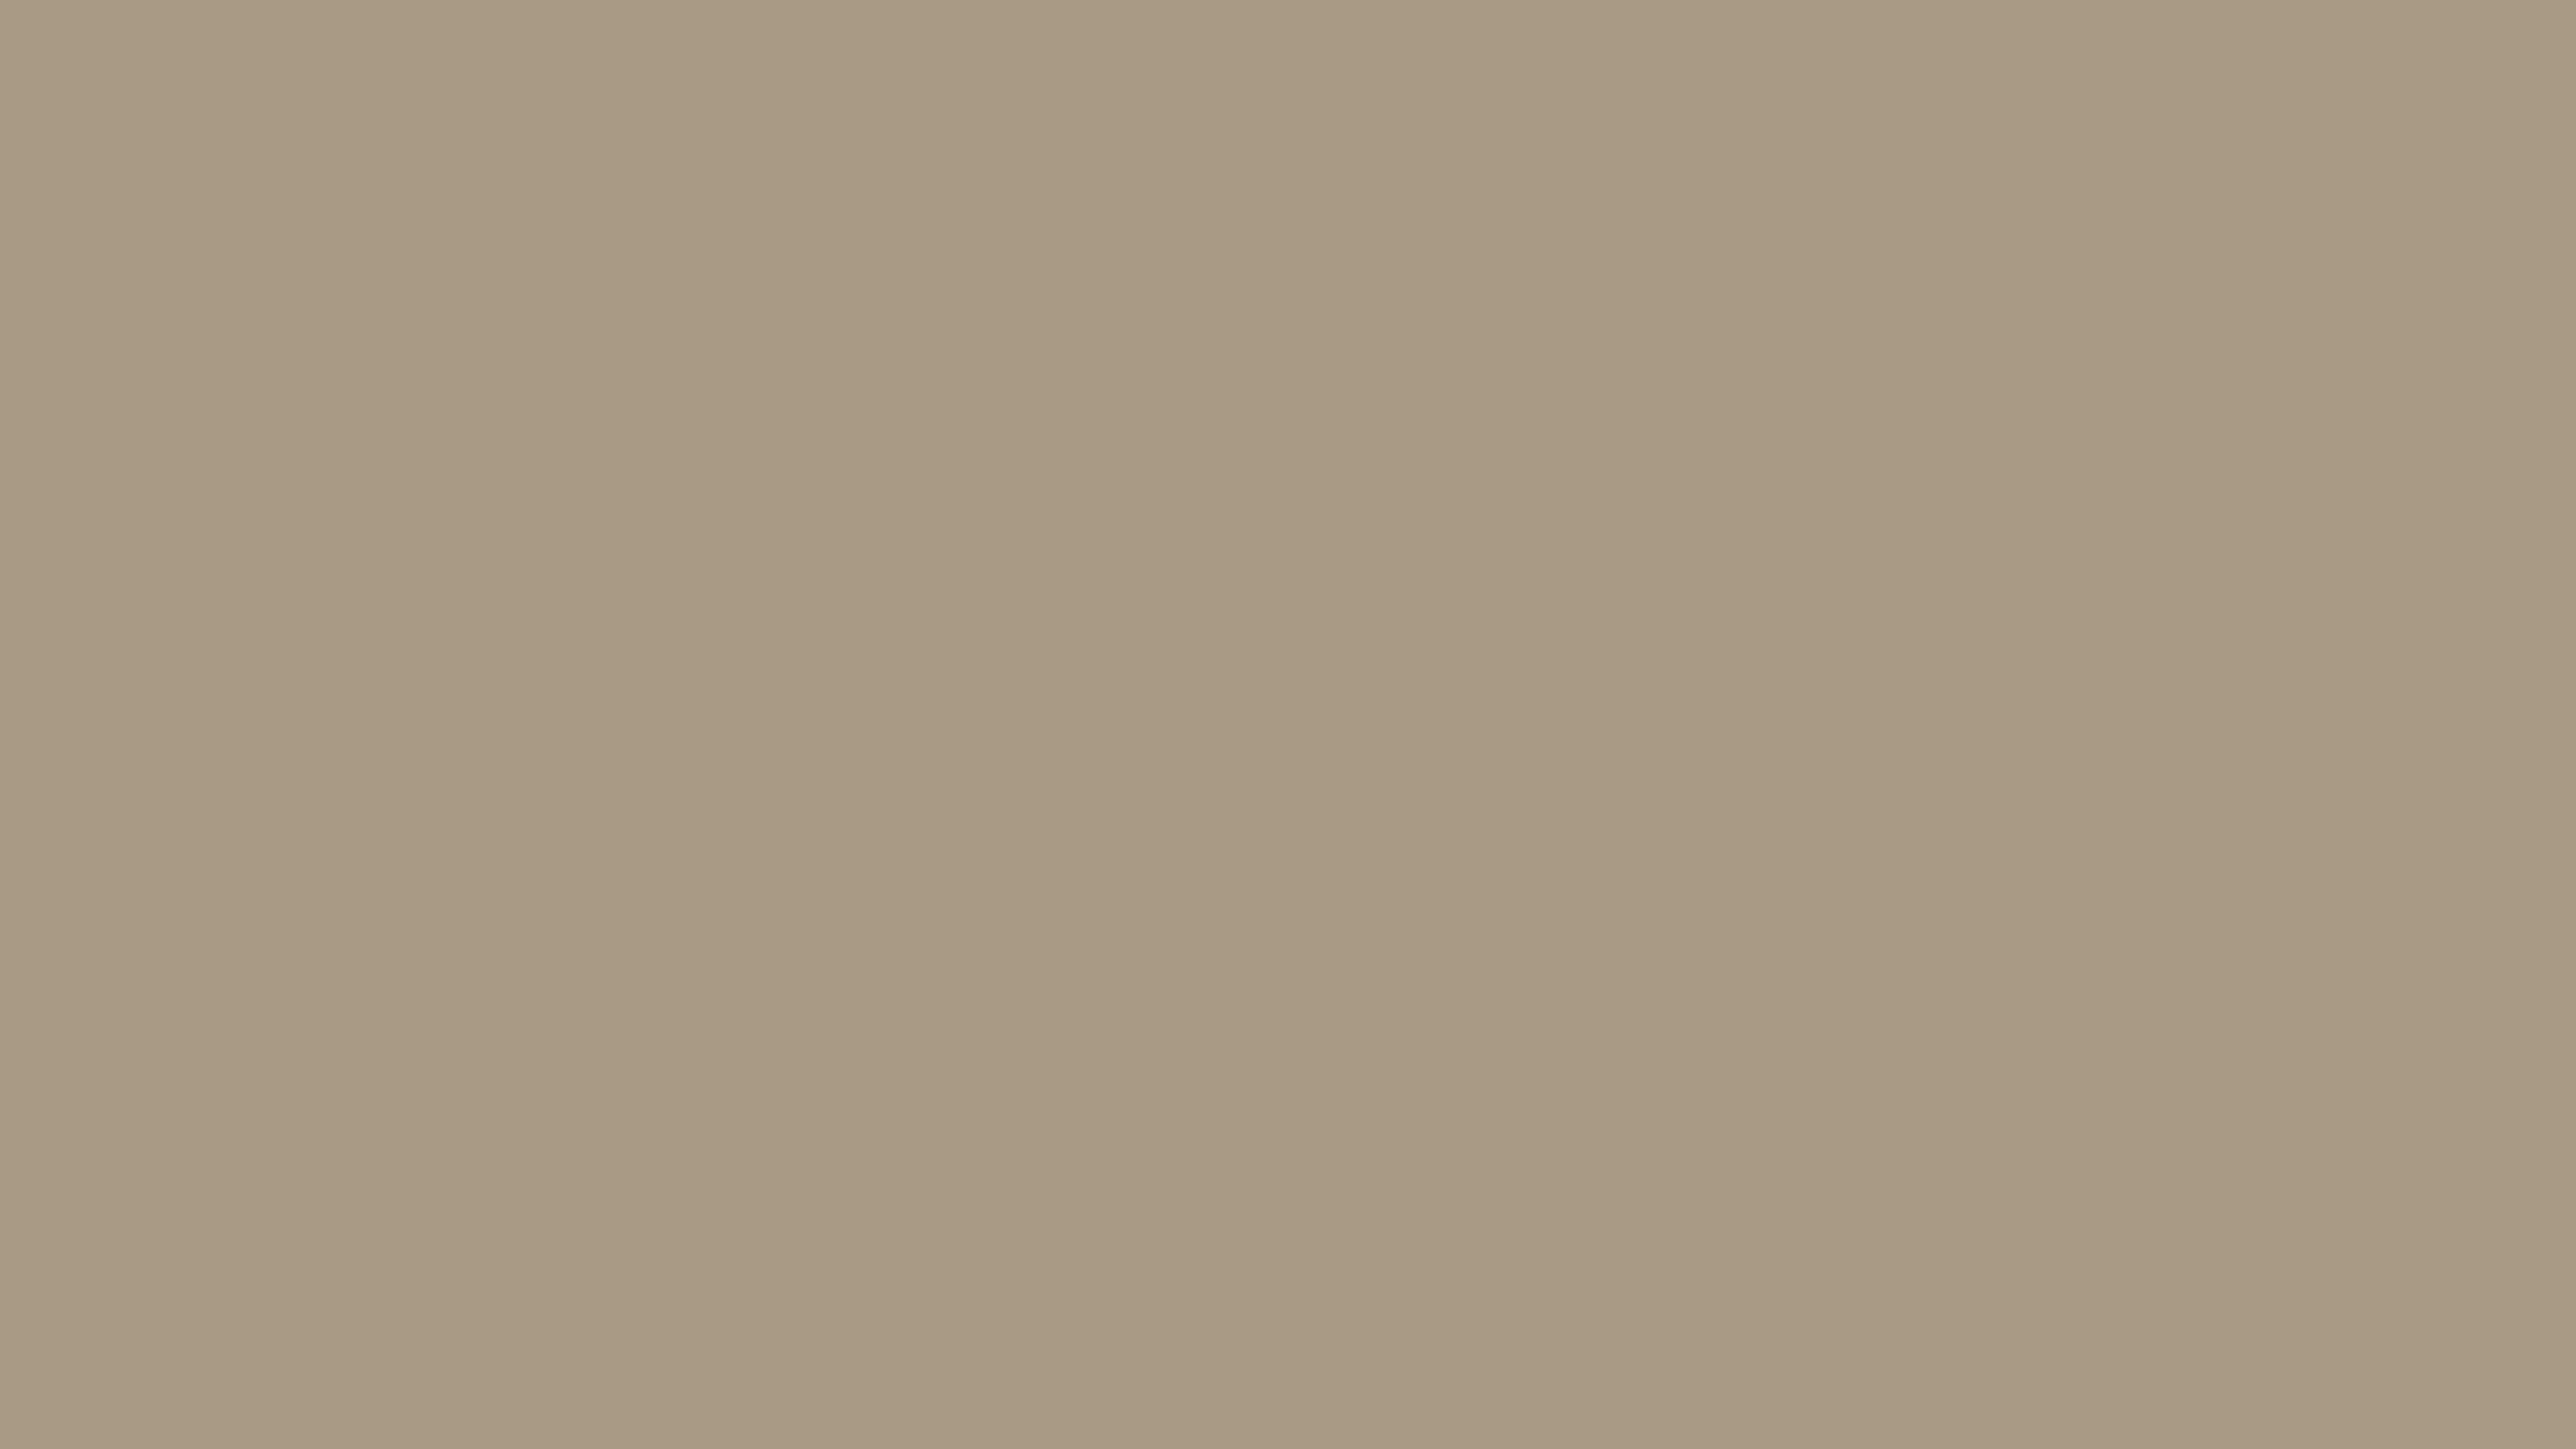 7680x4320 Grullo Solid Color Background